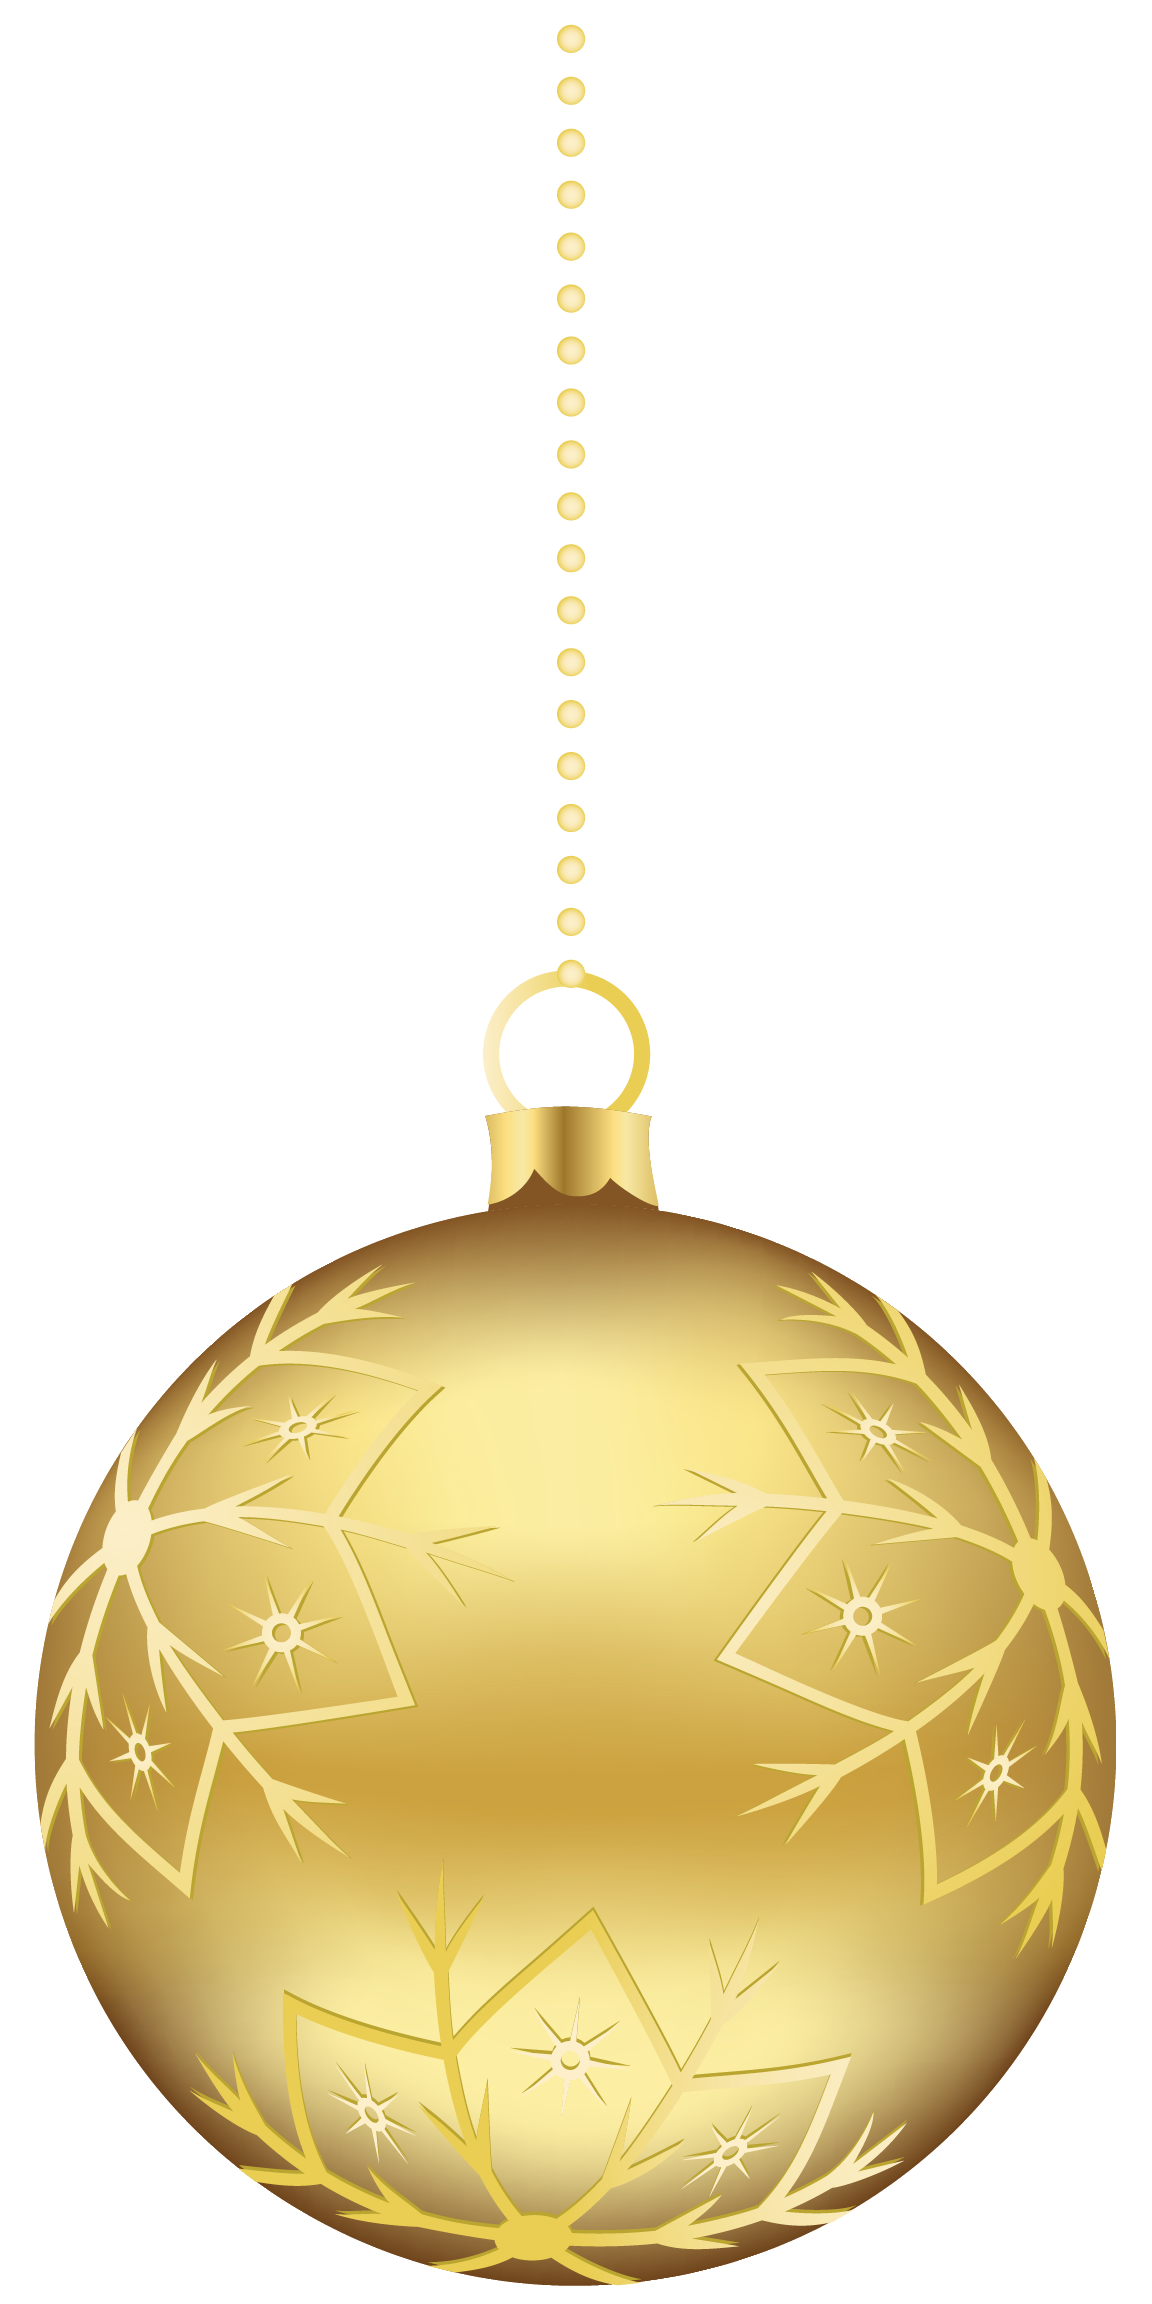 Gold picture ornaments png. Christmas clipart free icons